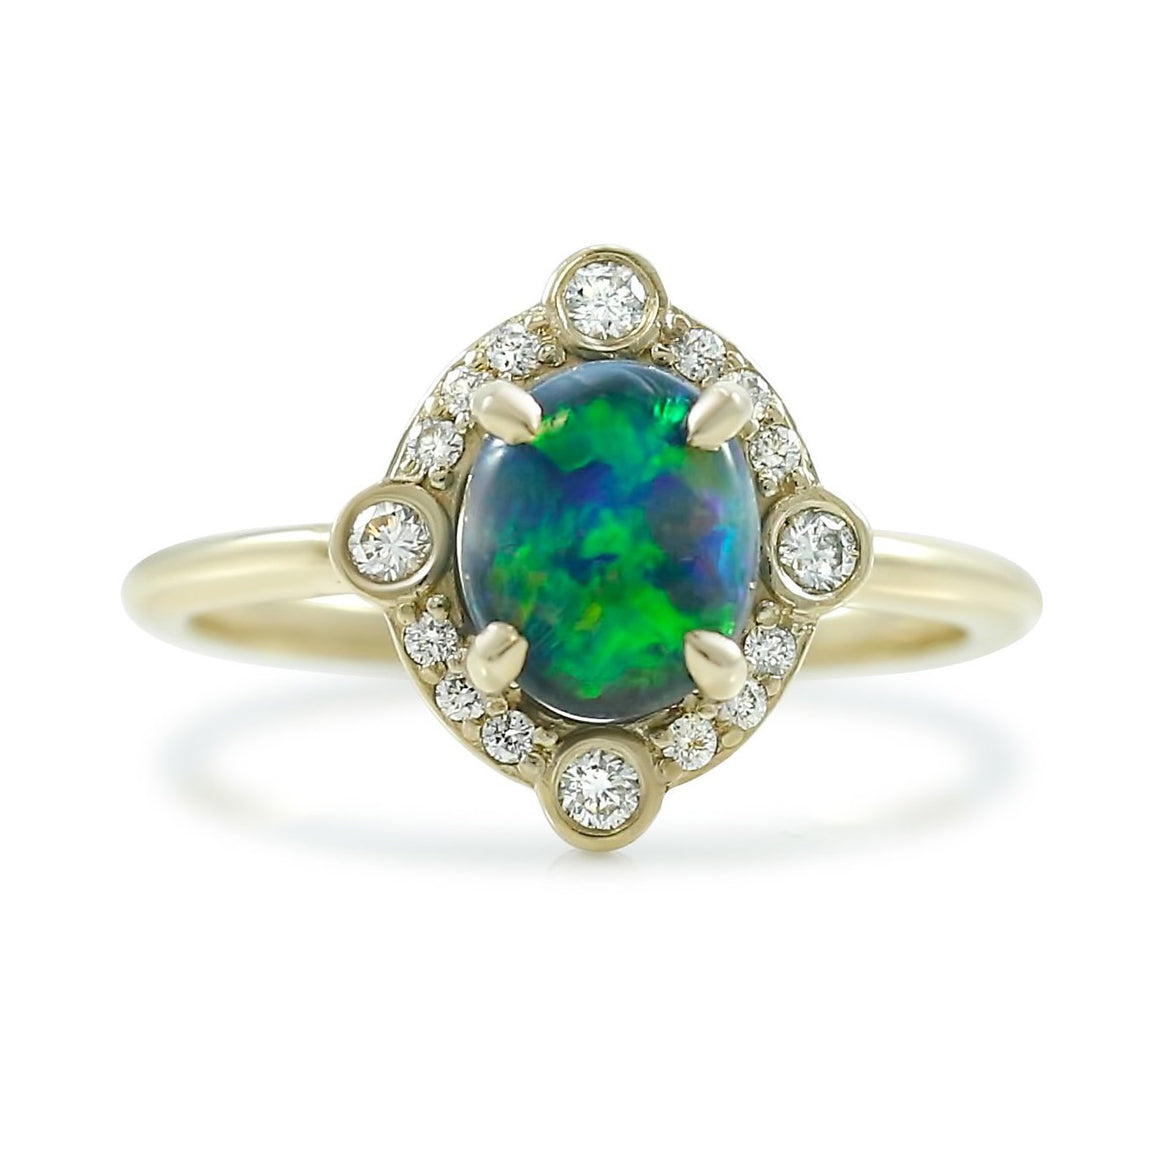 14k yellow gold black opal ring with a diamond halo prong set with a thin simple band